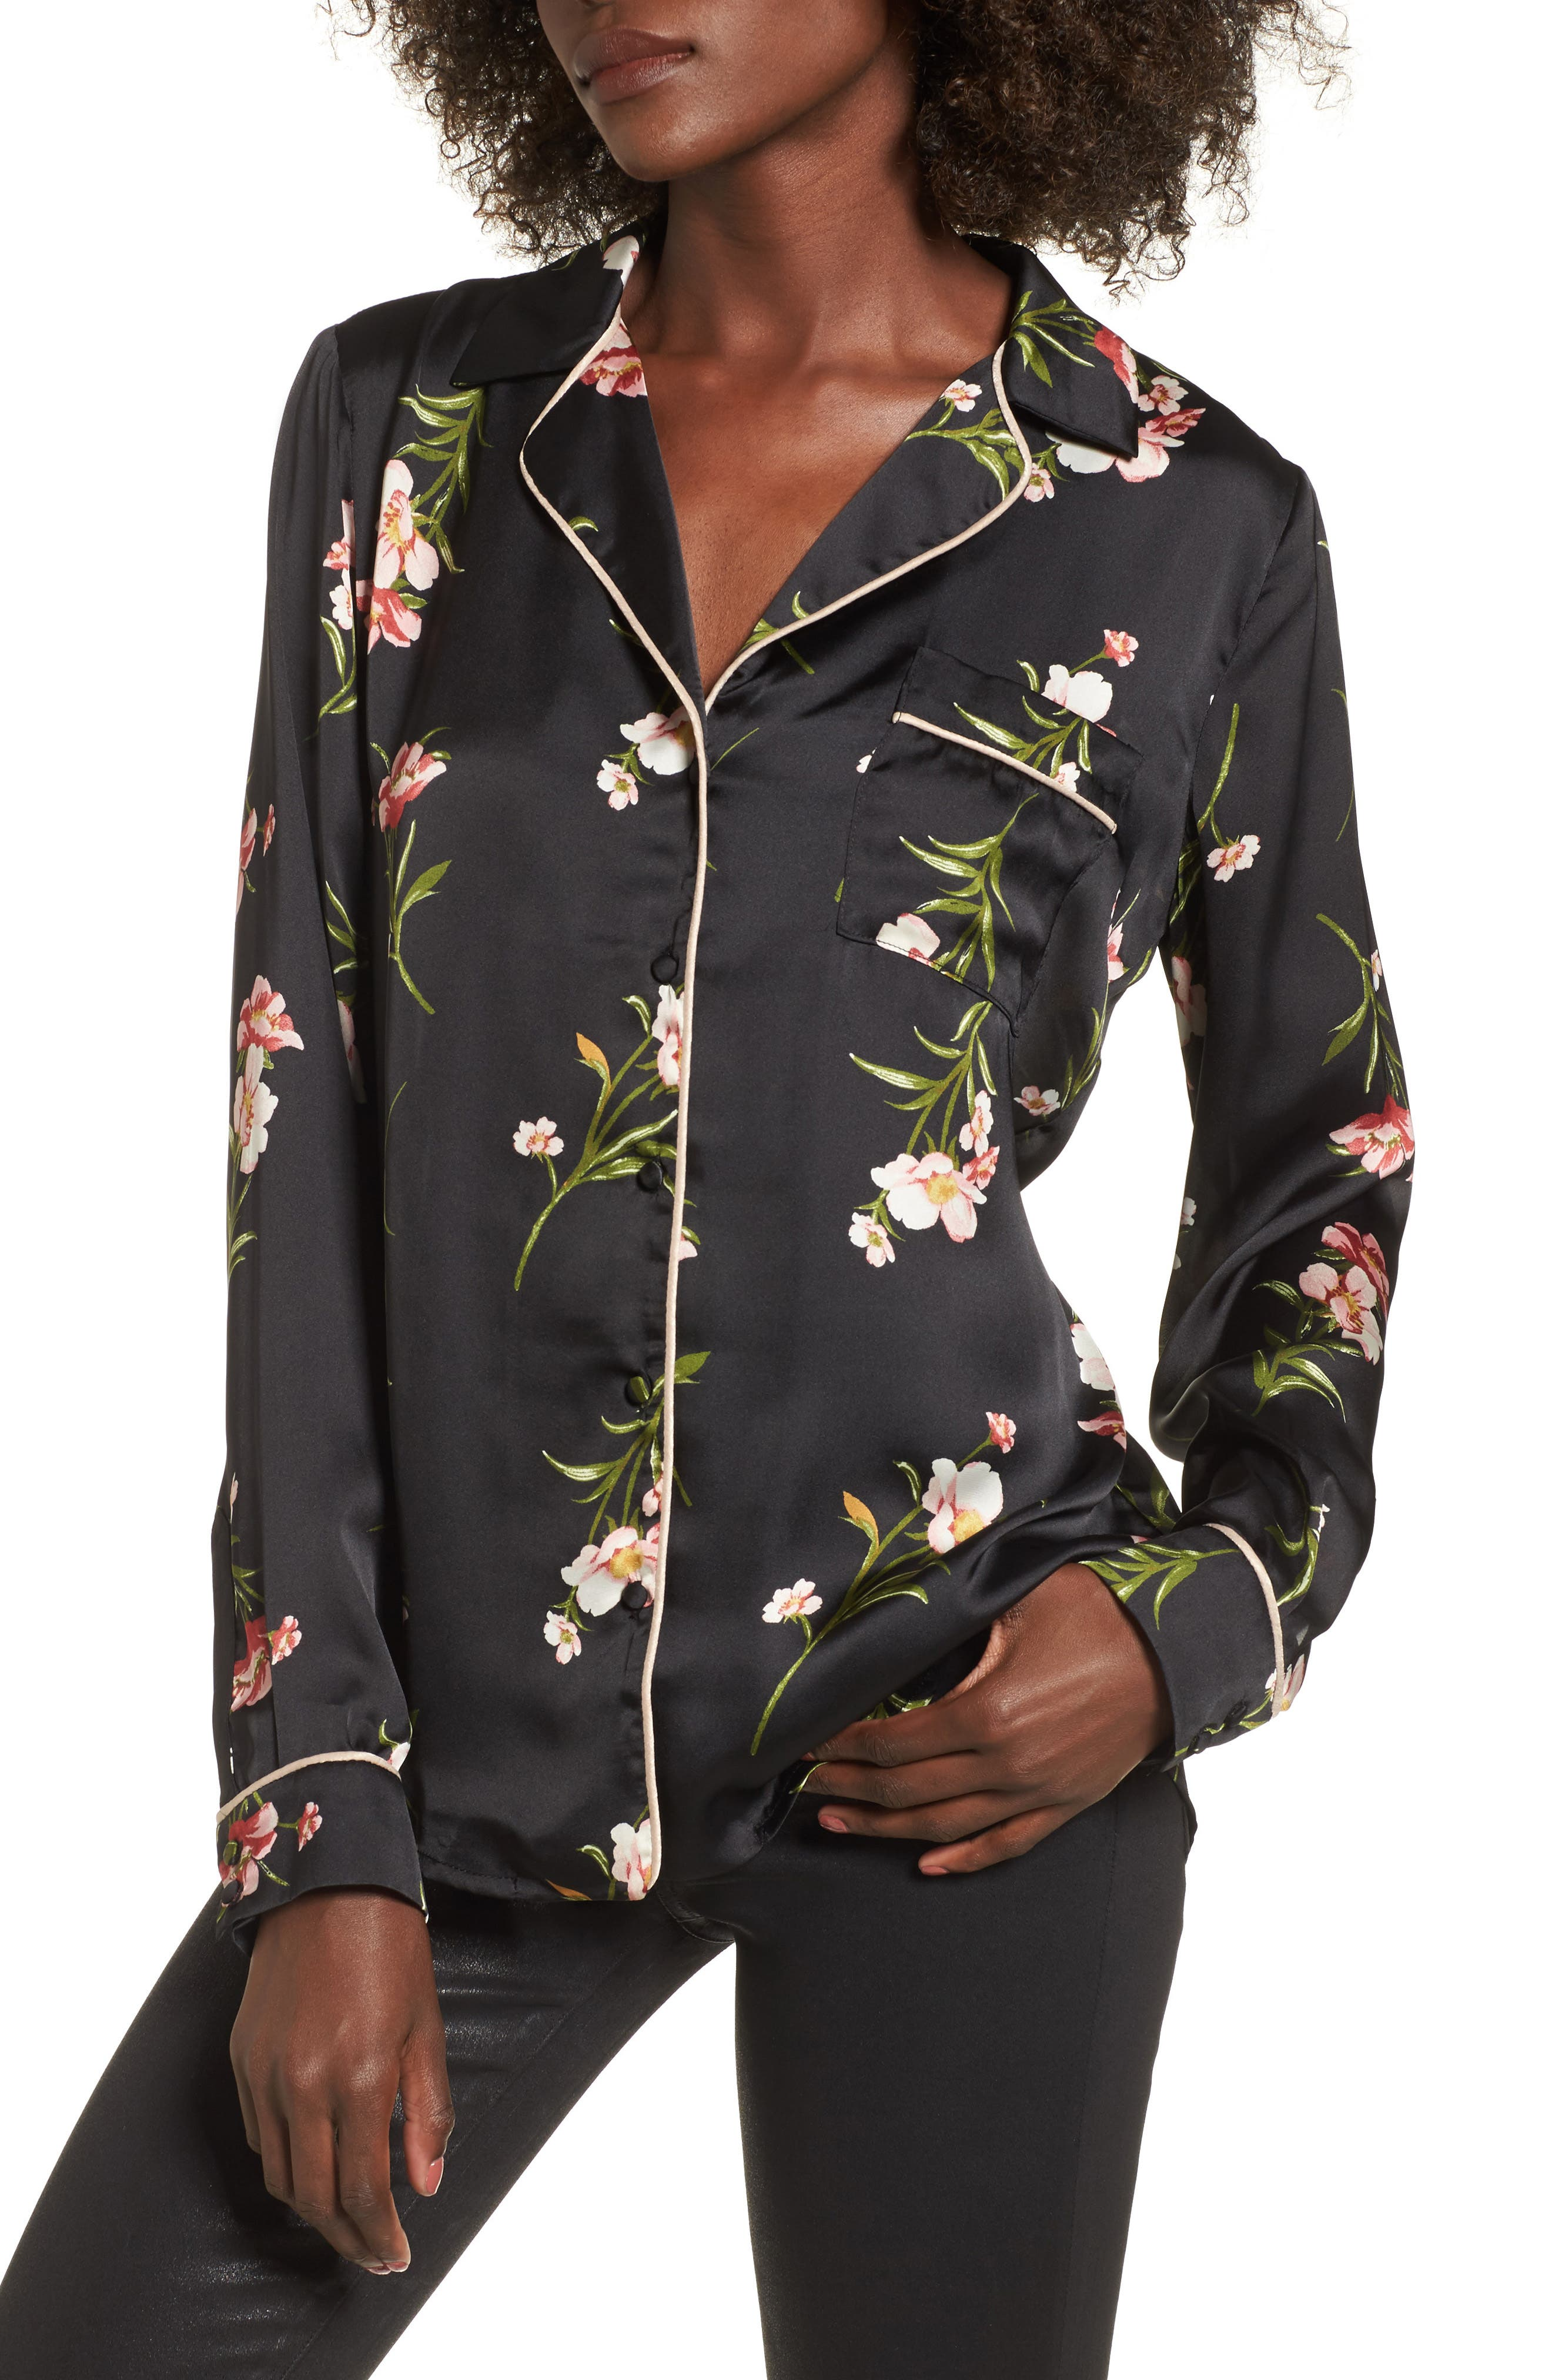 Floral PJ Shirt,                             Main thumbnail 1, color,                             001